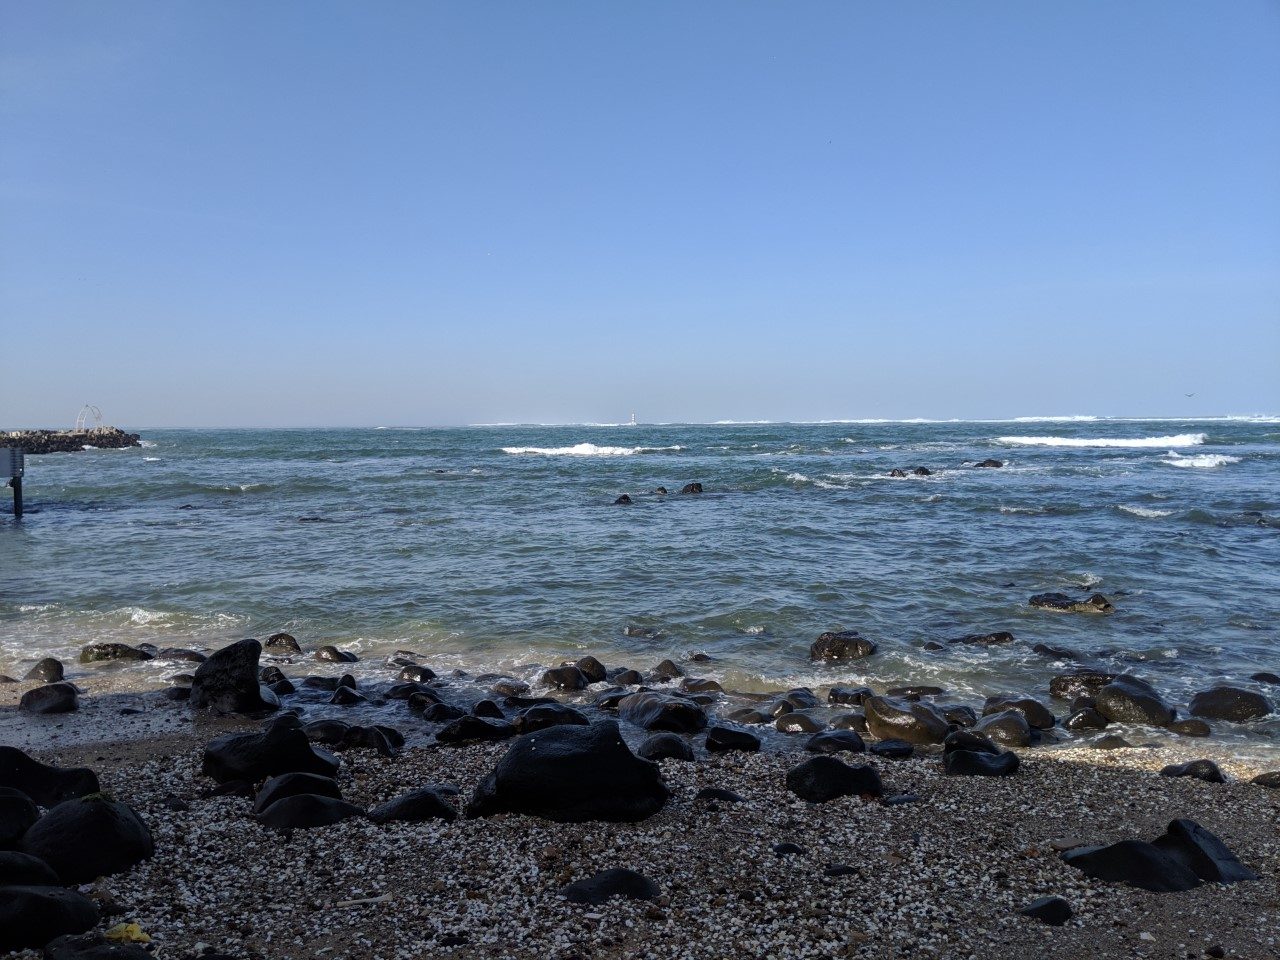 Senegal coastline